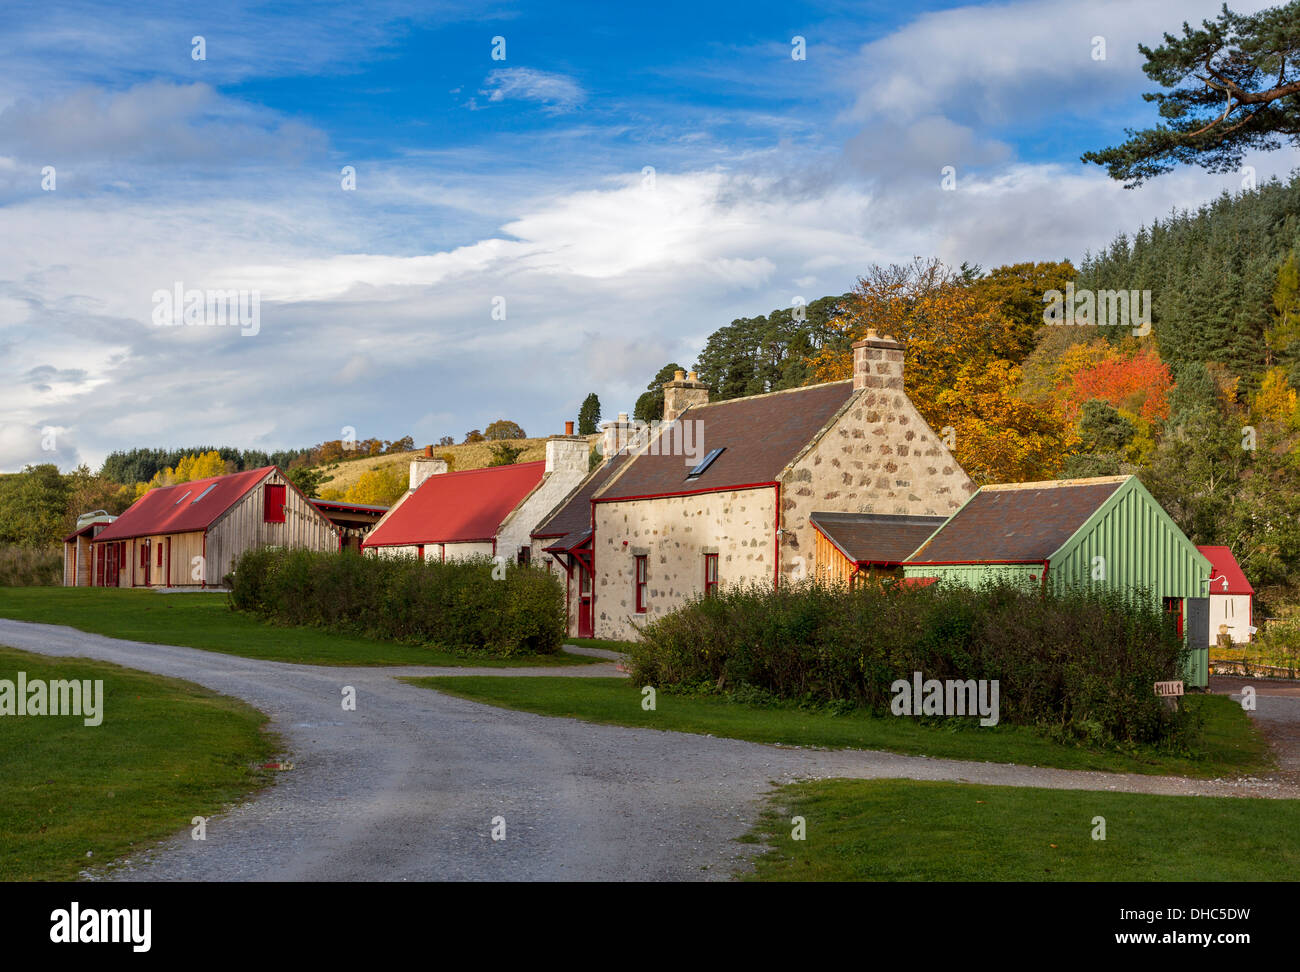 OLD RENOVATED WOOL MILL IN KNOCKANDO SPEYSIDE SCOTLAND WITH AUTUMNAL TREE COLOURS - Stock Image